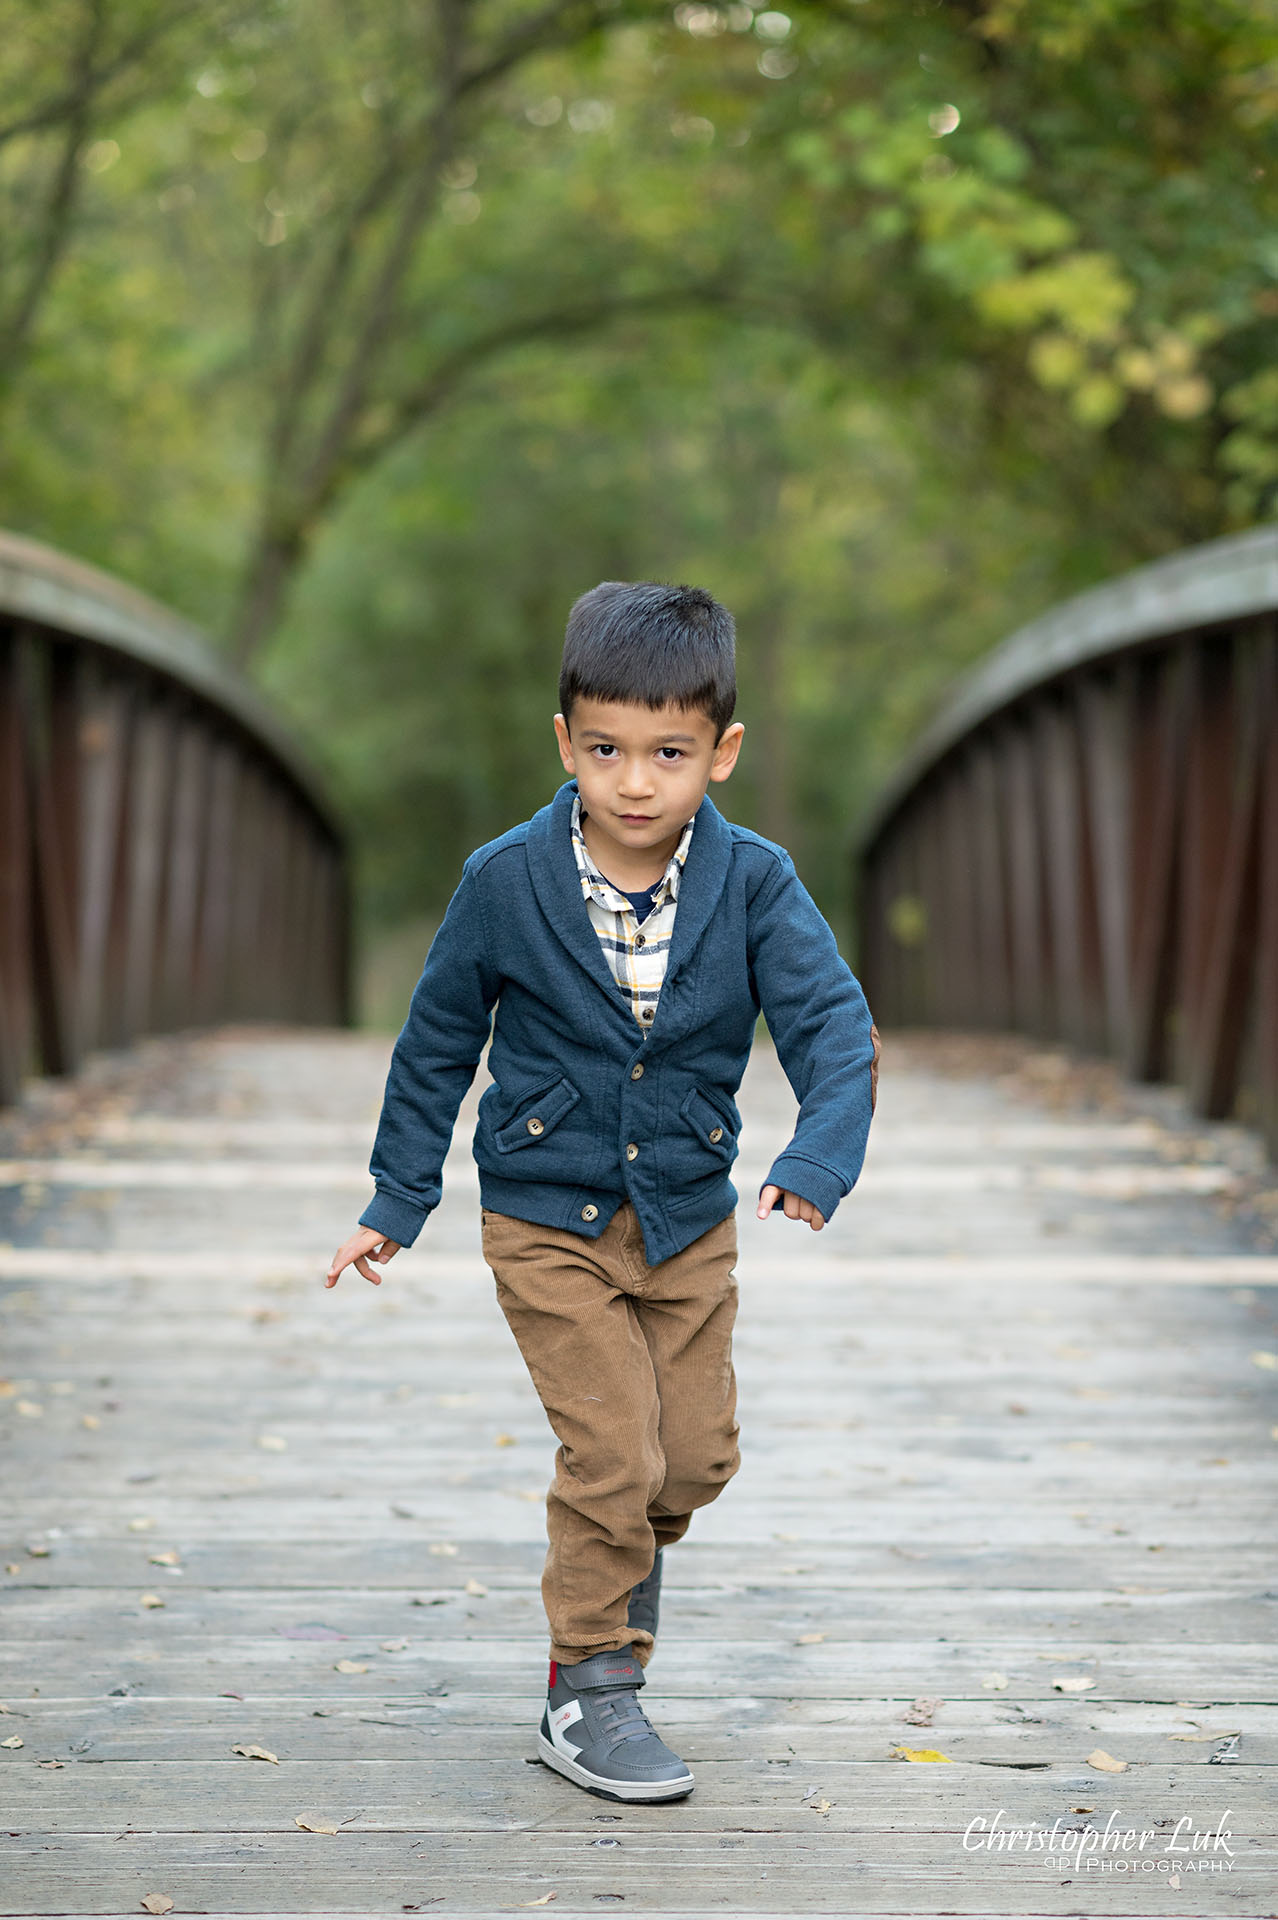 Christopher Luk Family Photographer Toronto Markham Unionville Autumn Fall Leaves Natural Candid Photojournalistic Son Brother Boy Standing Funny Pose Bridge